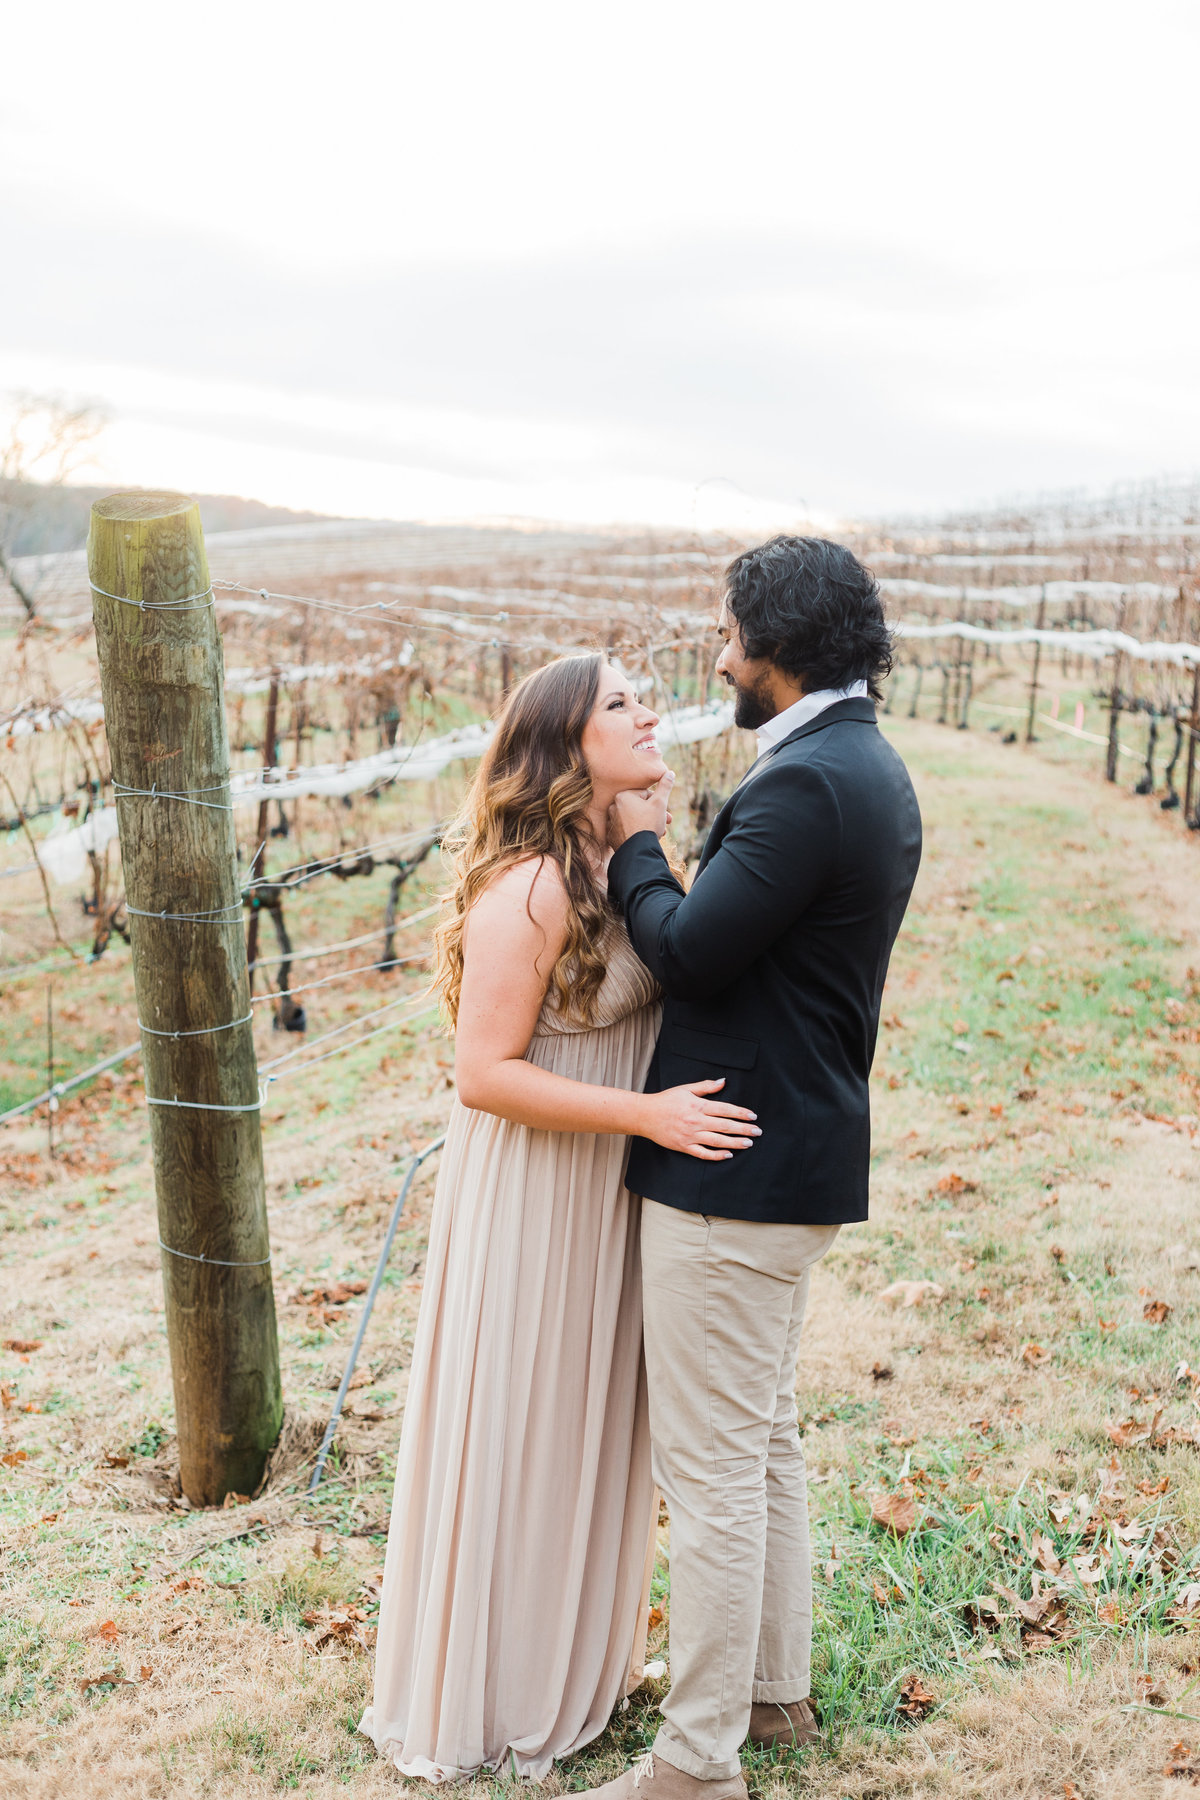 Motaluce Winery, Gainesville, GA Couple Engagement Anniversary Photography Session by Renee Jael-23